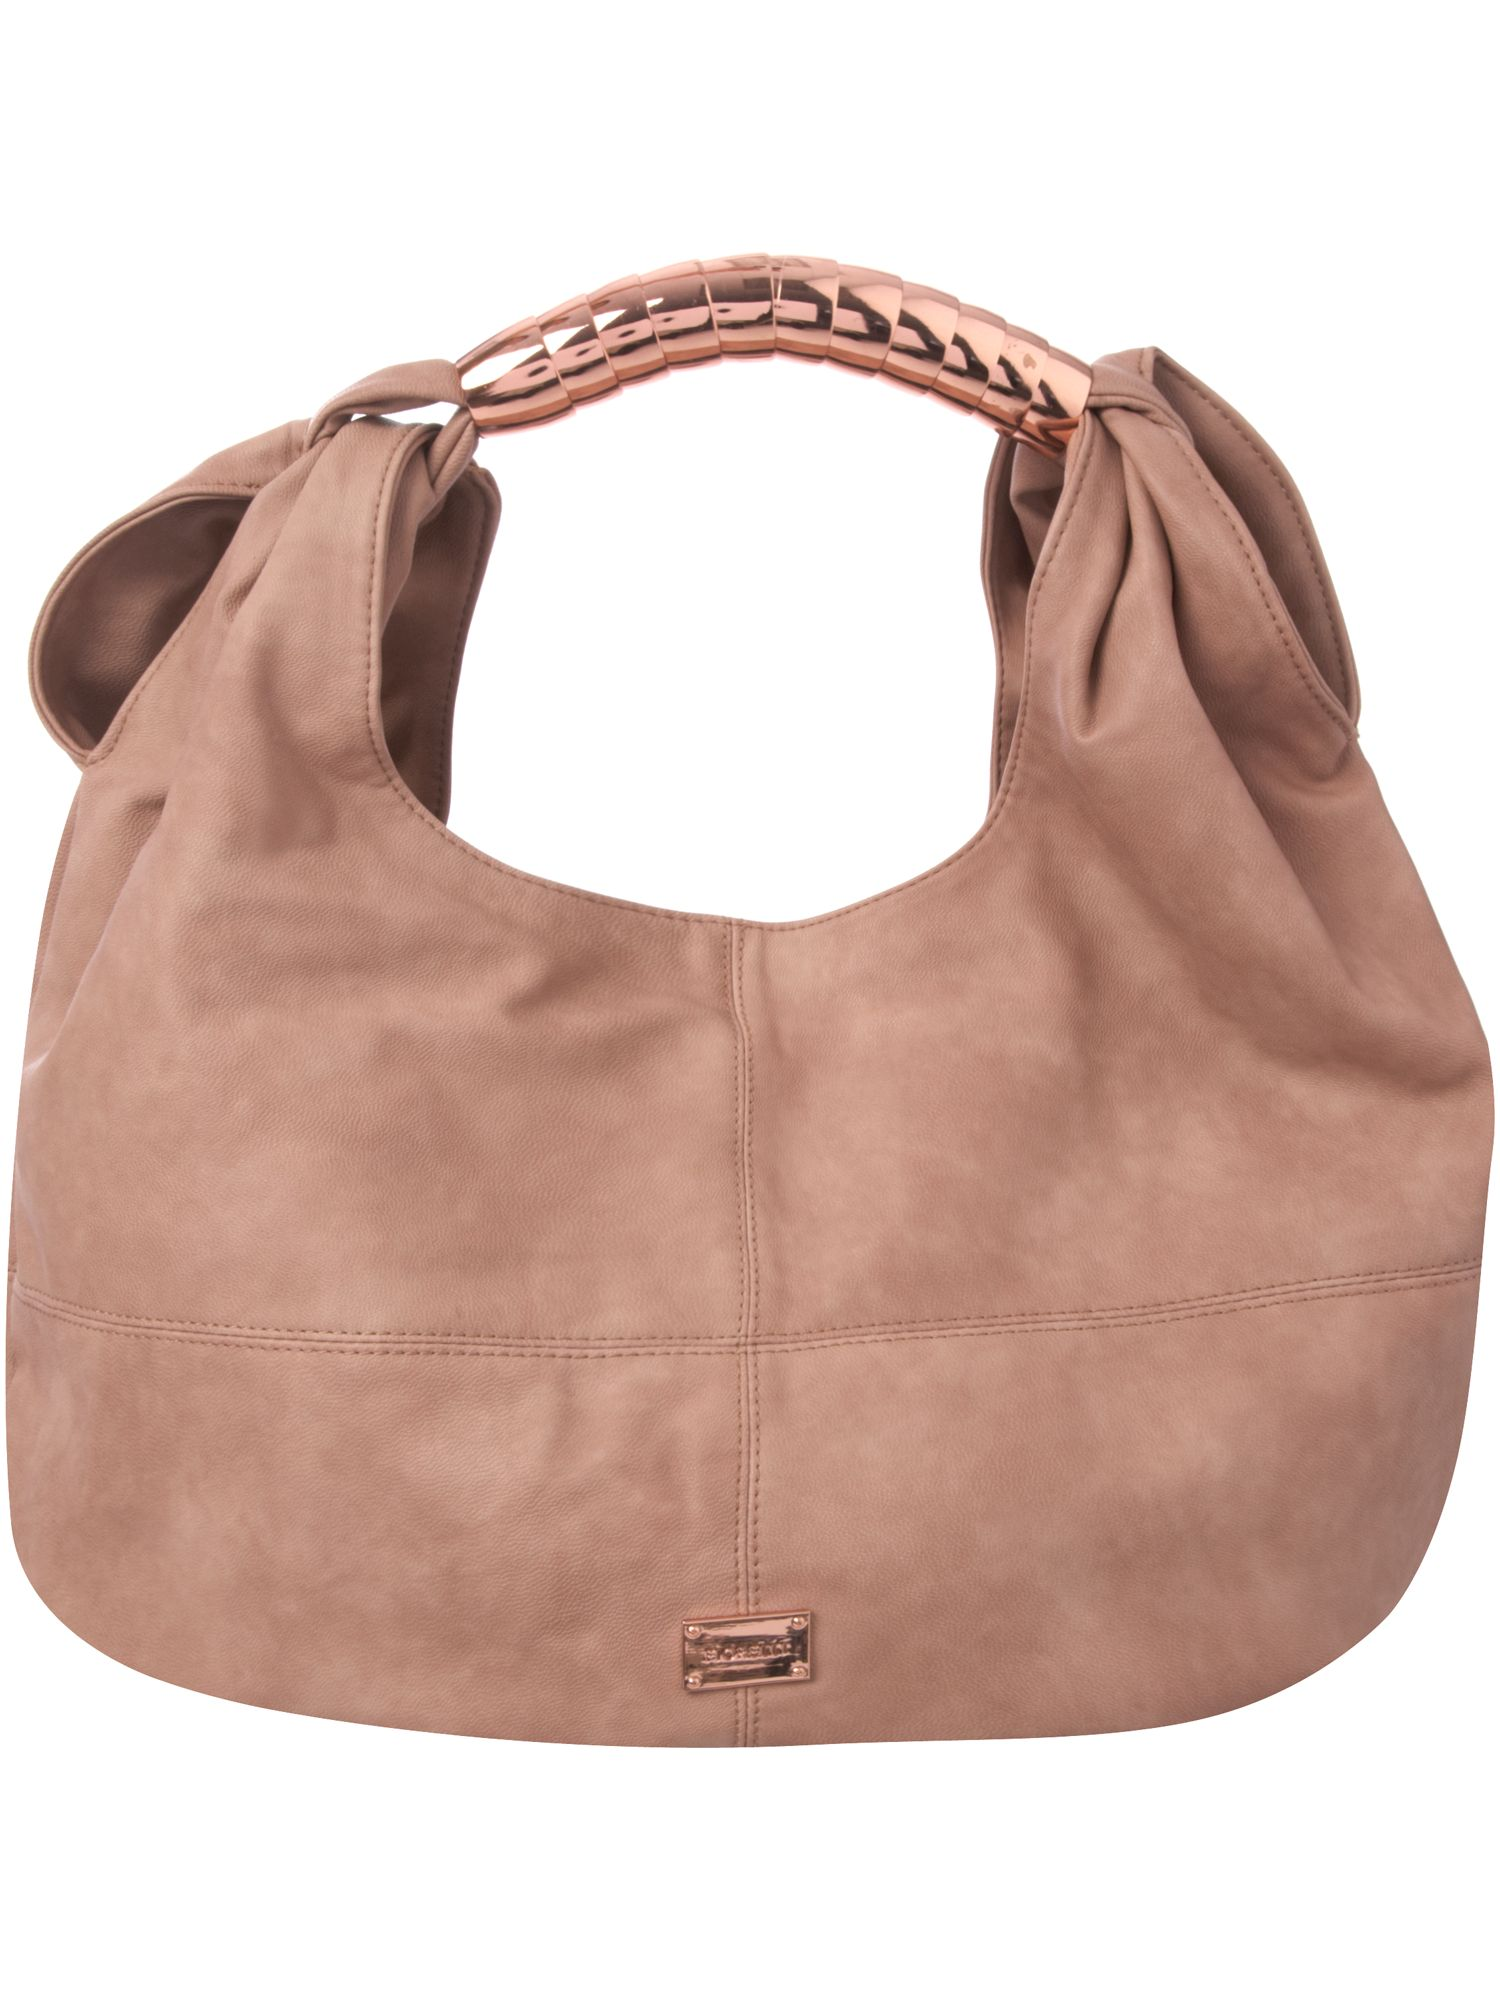 Fiorelli Fiji, large shoulder hobo bag product image